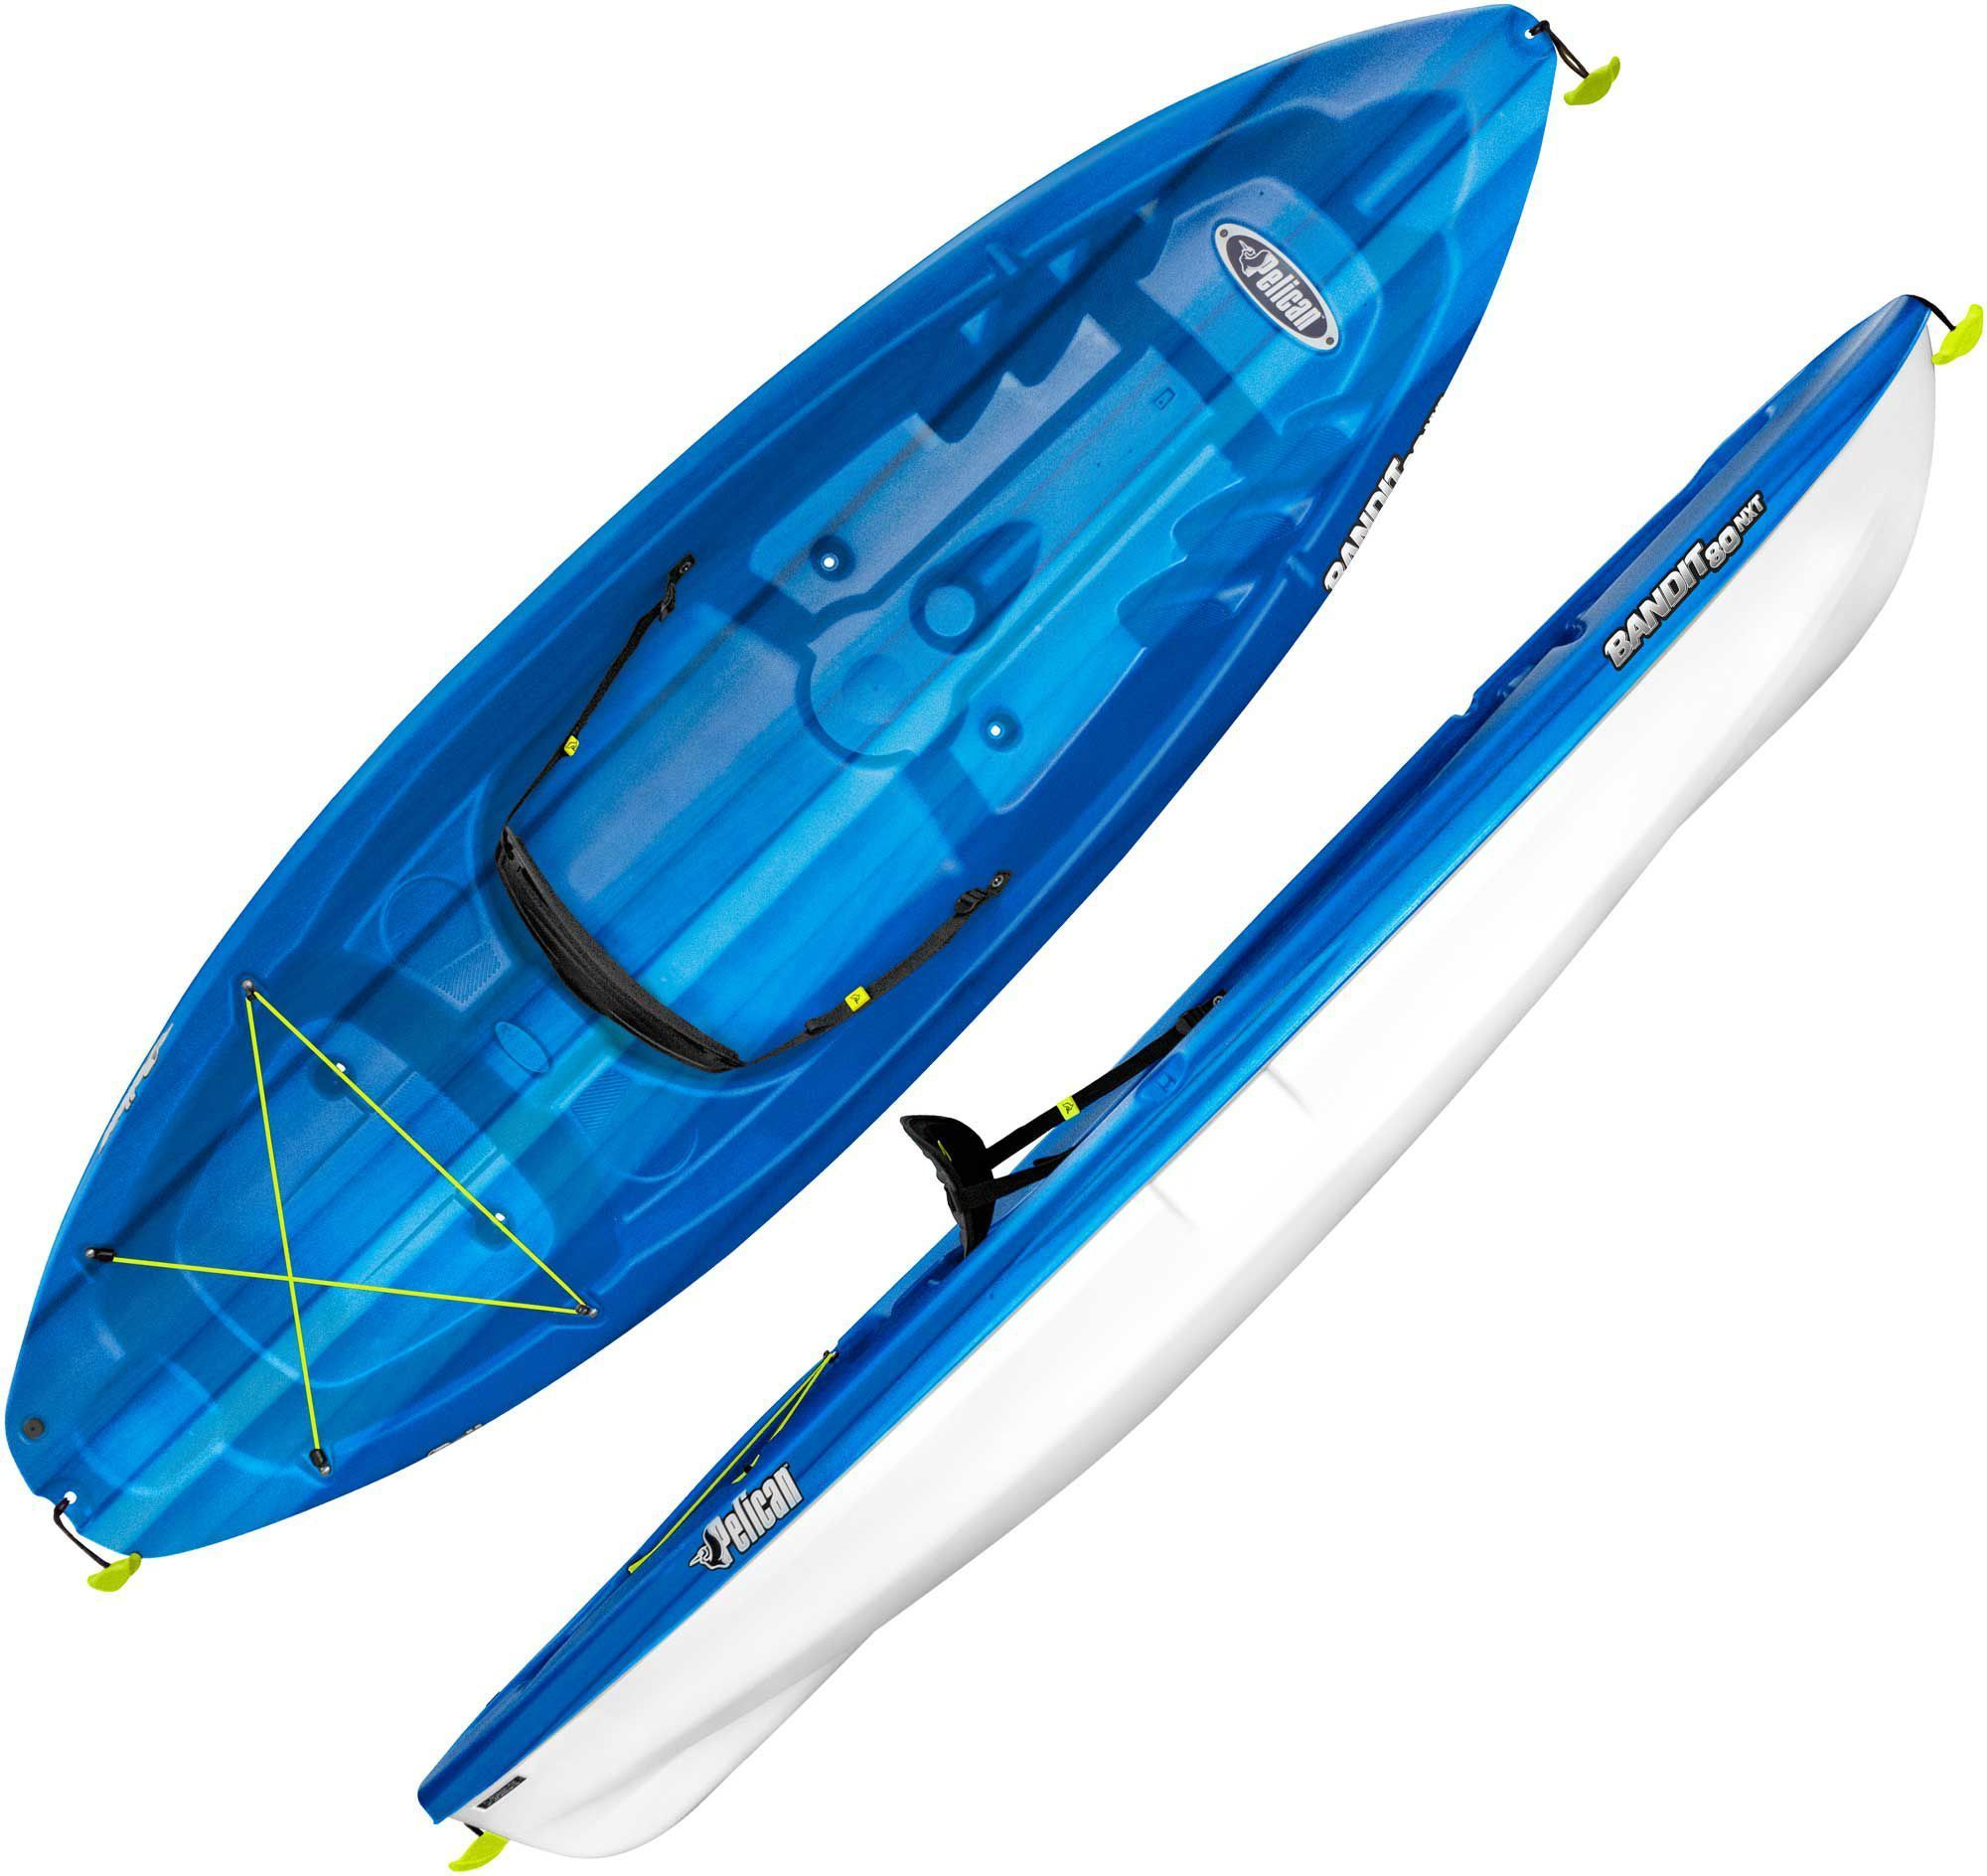 Brilliant Buying A 200 Kayak Ideas Kayak Accessories Kayaking